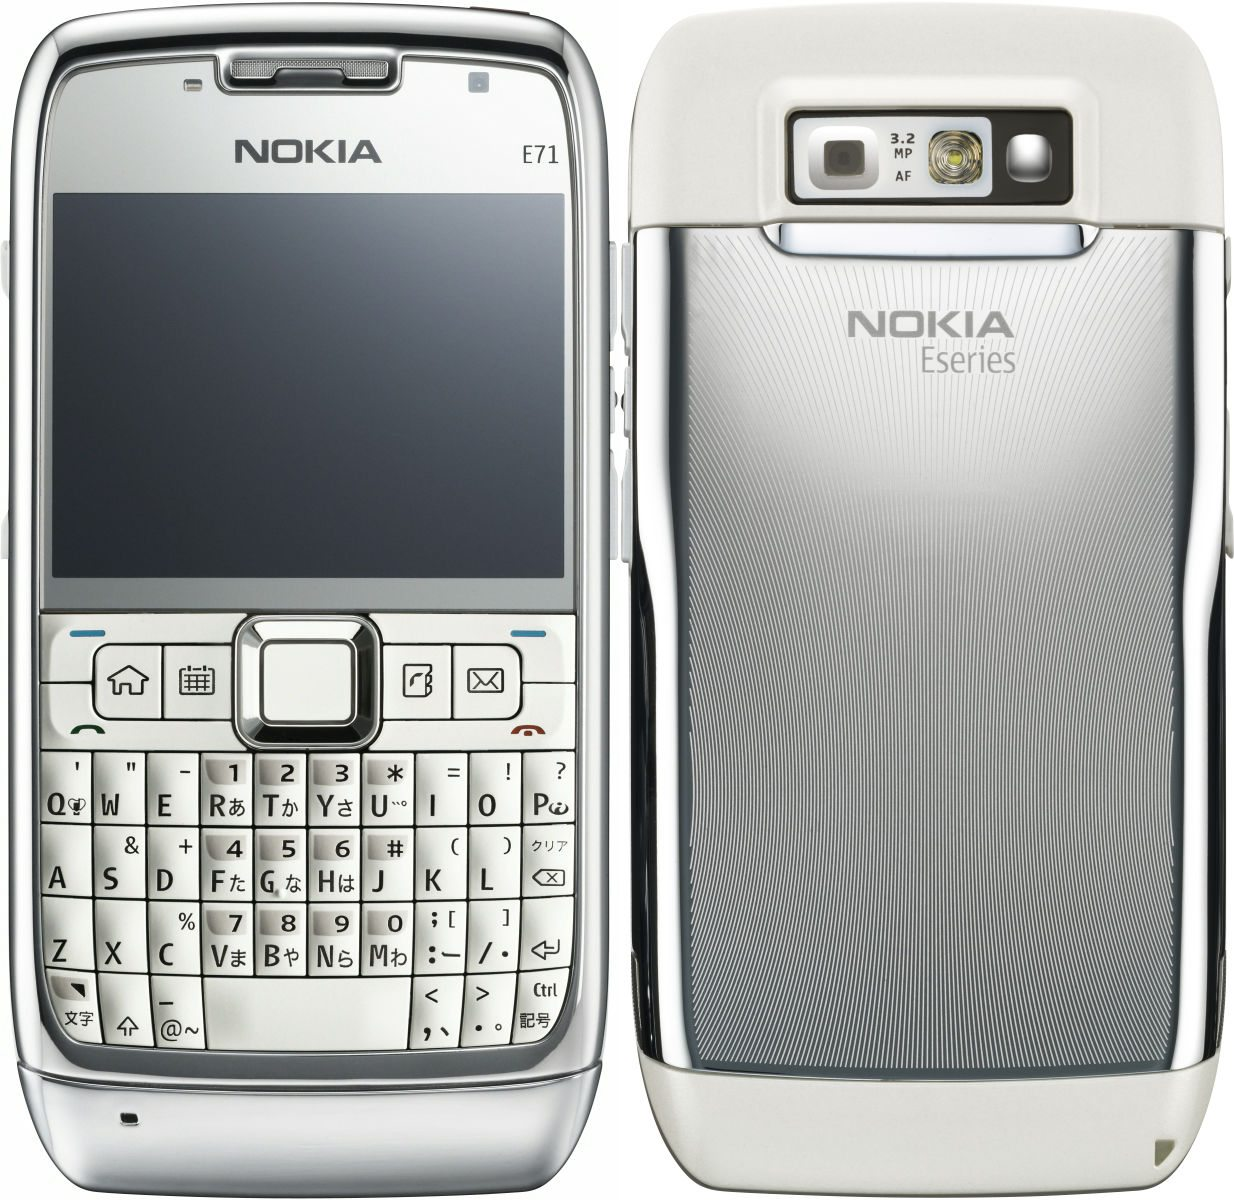 A Luxury White 18 K Gold Cell Phone By Nokia E71 You Can Choose One Of The Phones As Market Is Completely Full New Comes With Pure That Makes This